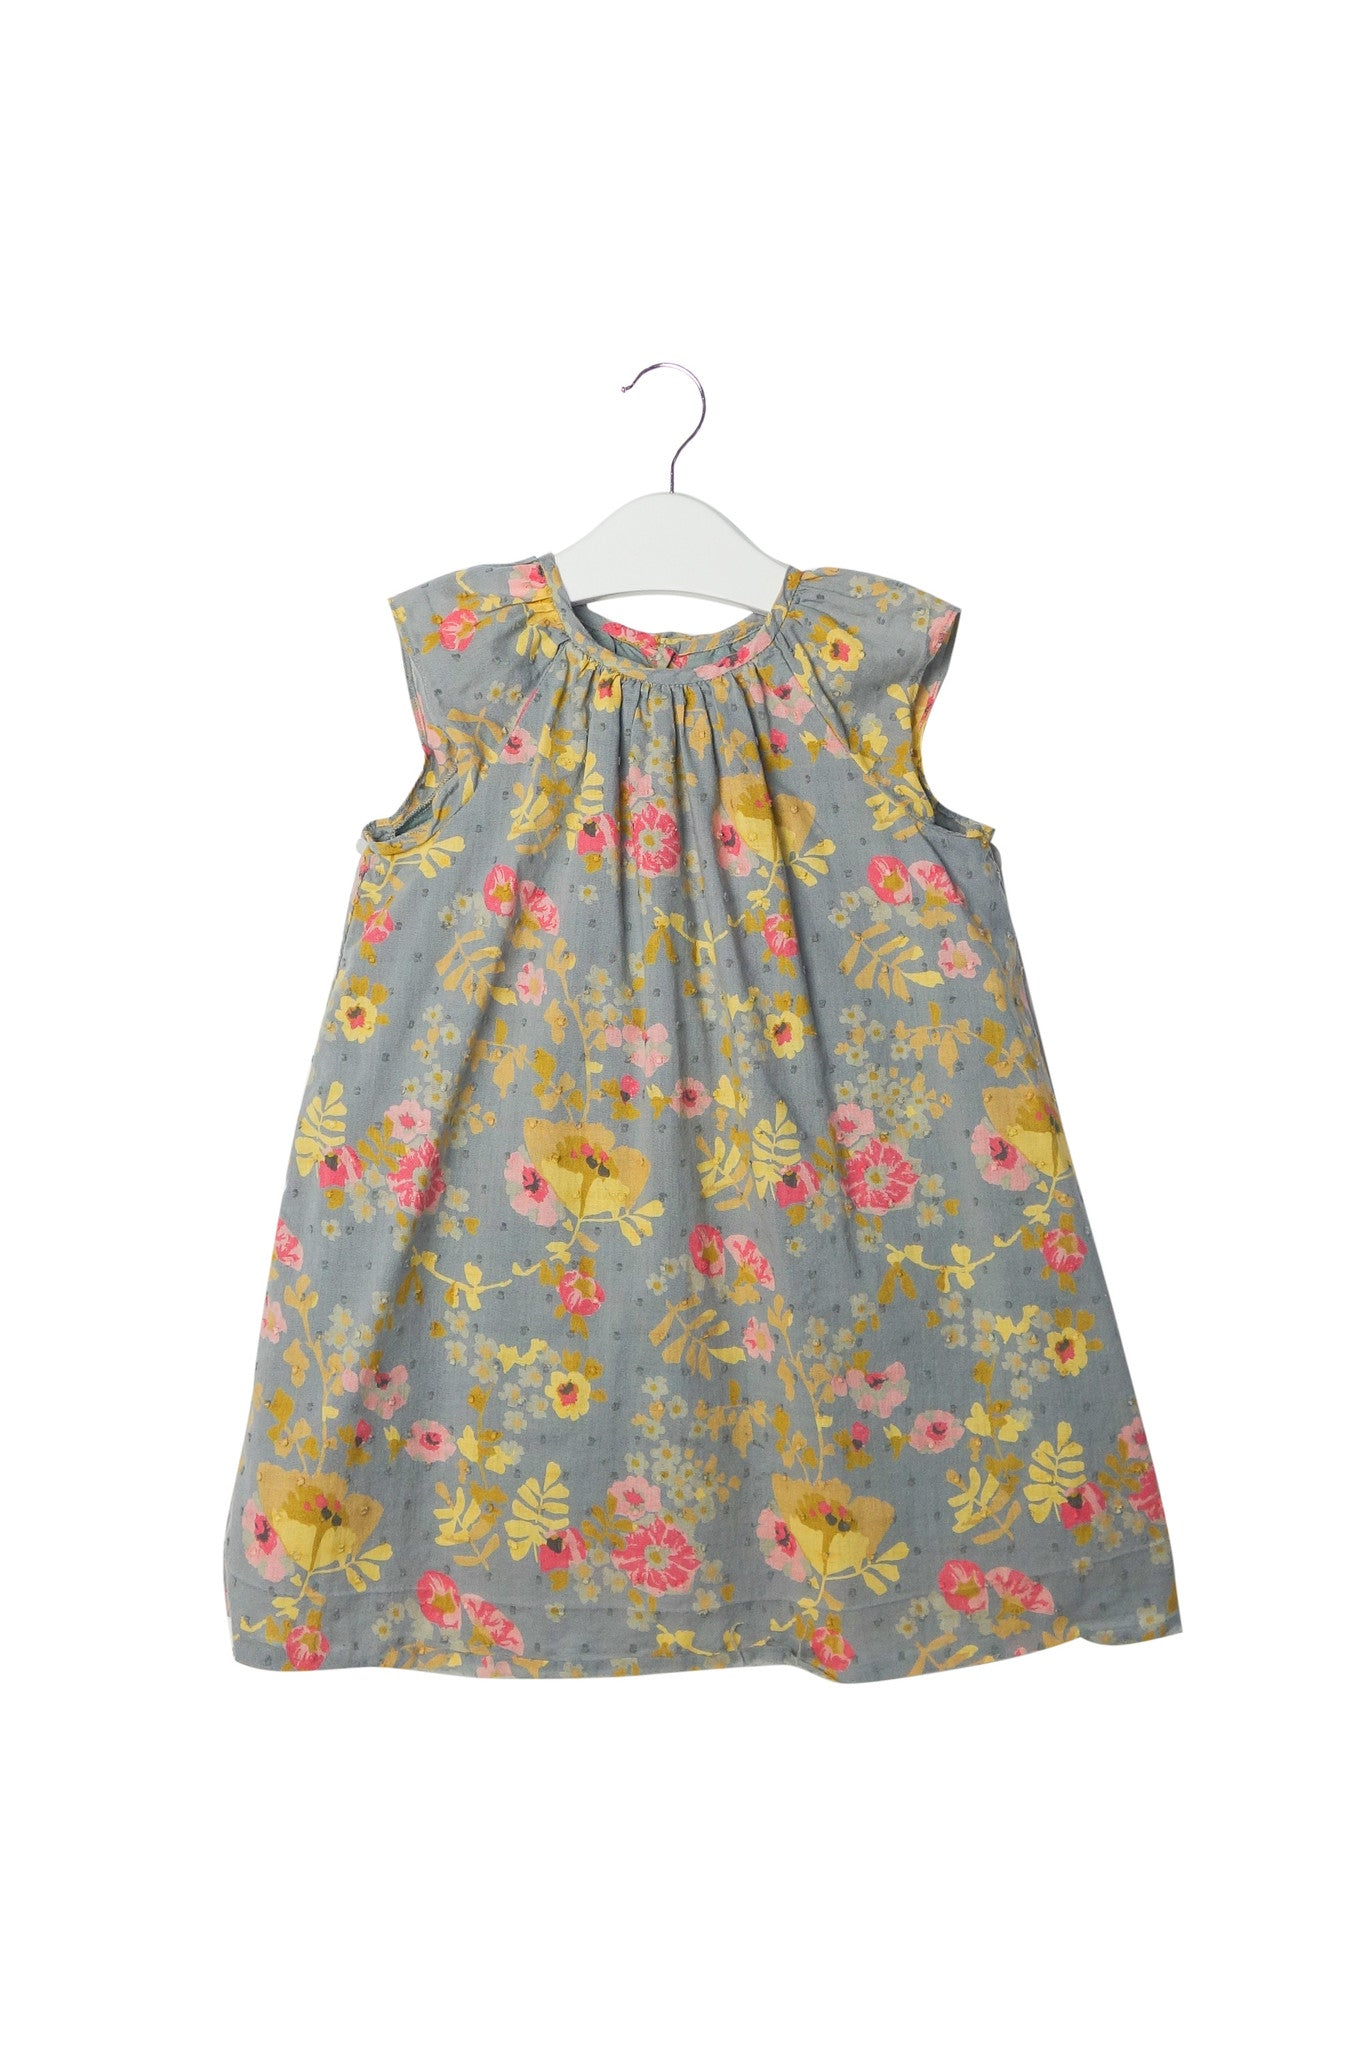 10003037 Bonpoint Kids~Dress 2T at Retykle